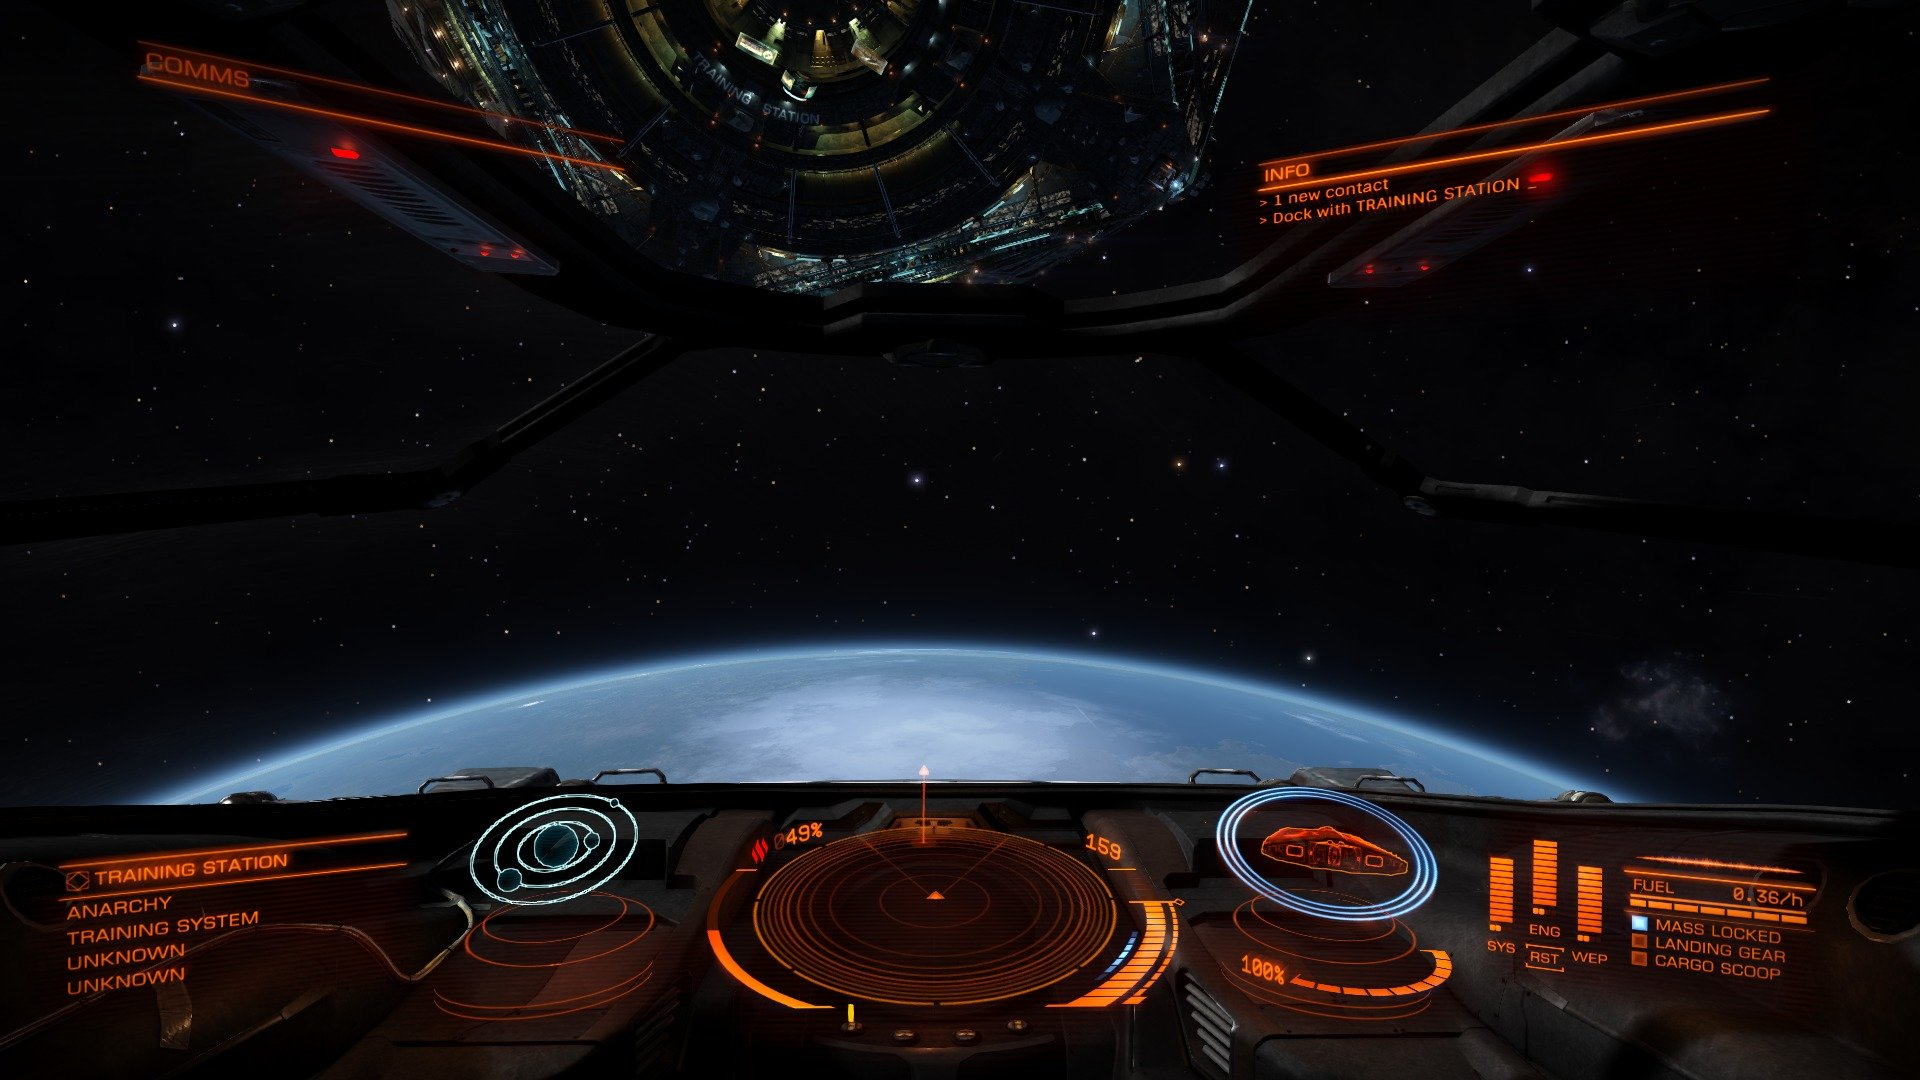 Elite: Dangerous review - in space, no-one can hear you yawn